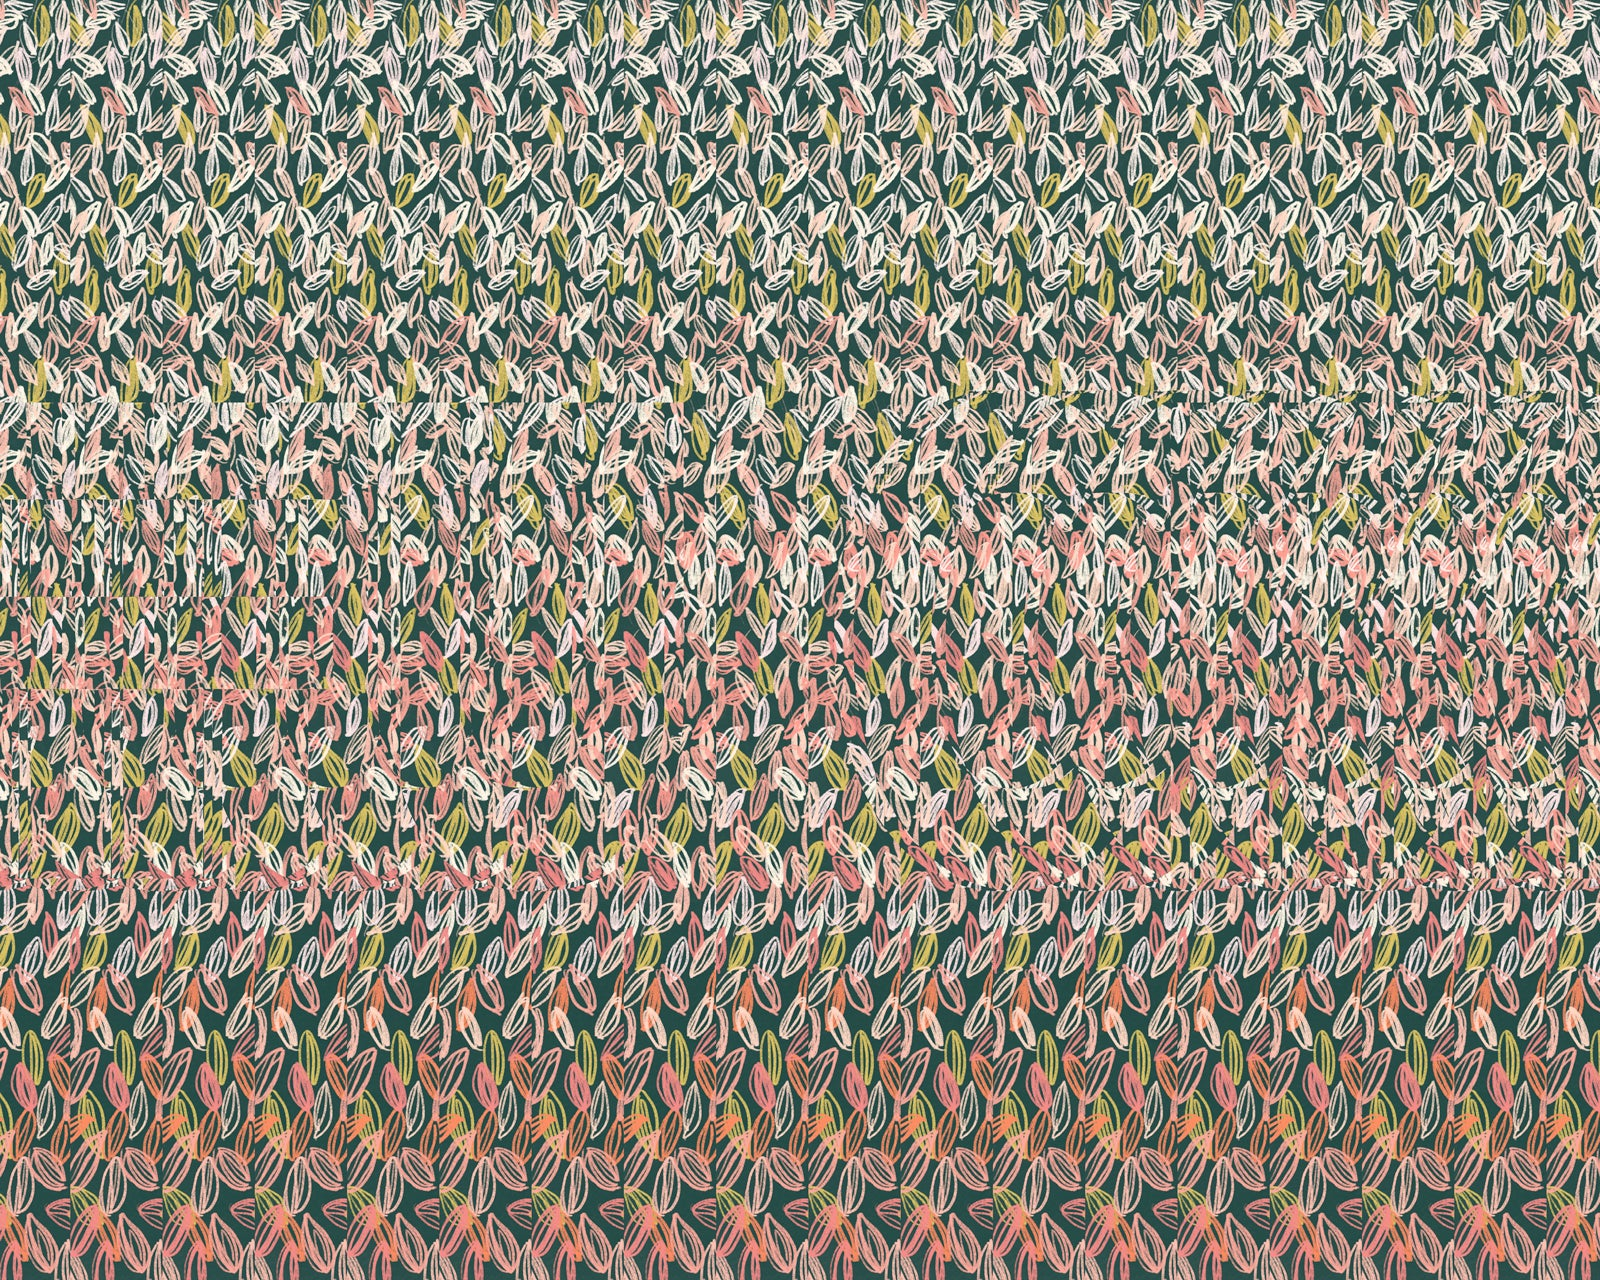 Funny magic eye stereogram leaf illustration drawing fuck hidden 3d word